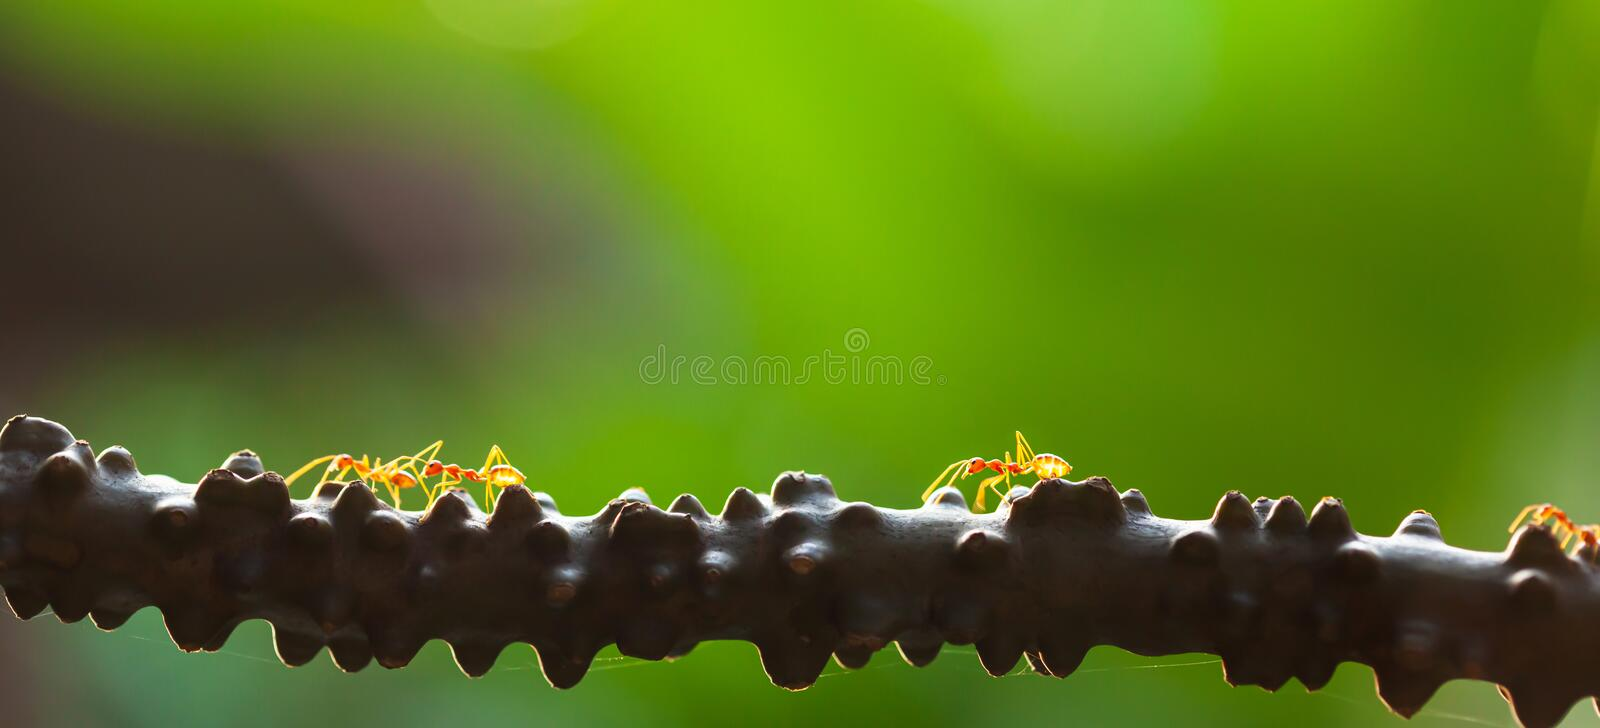 Weaver ants walking on the vine at sunset. A colony of Weaver ants walking on the vine at sunset, bright green blurred natural background. Selective focus stock photo